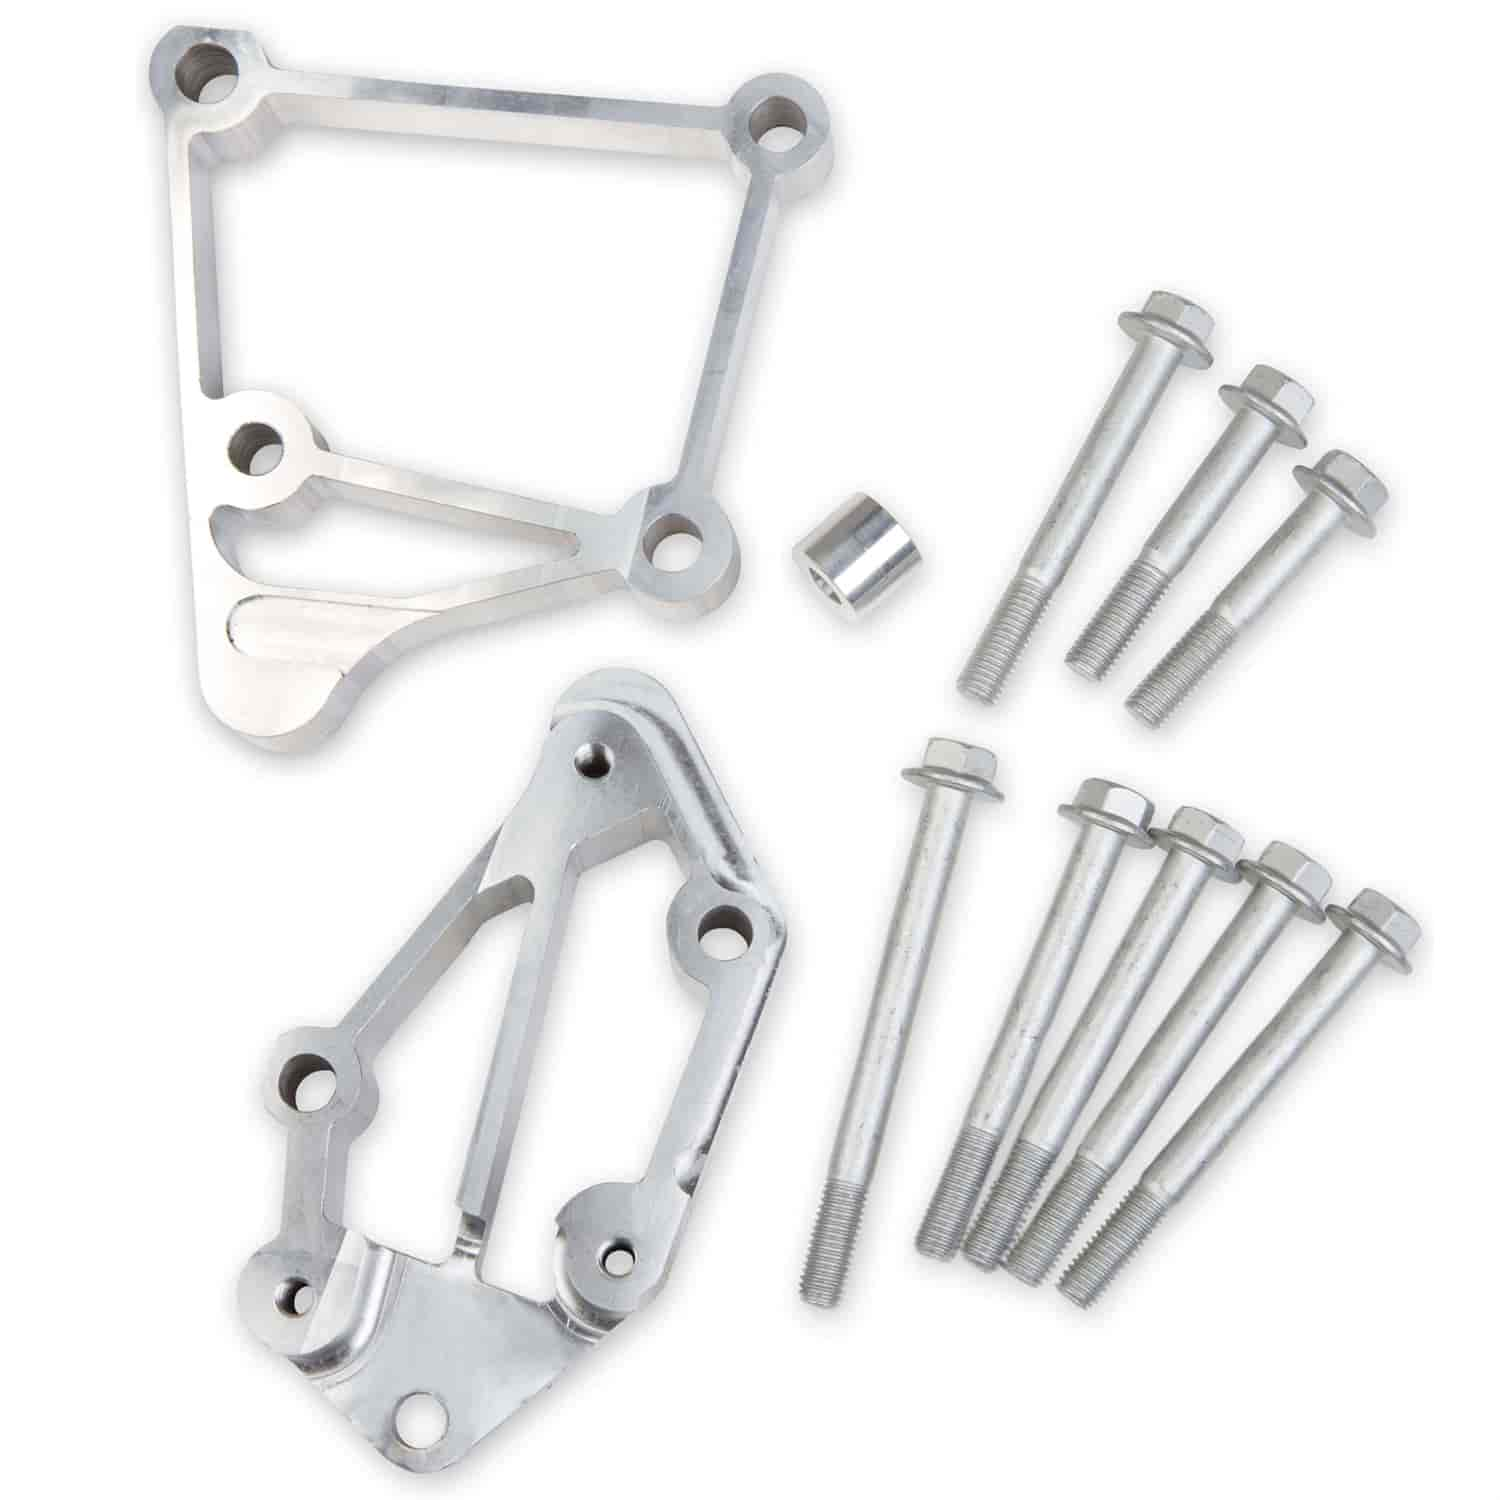 Holley 21-2 - Holley LS Accessory Drive Kits